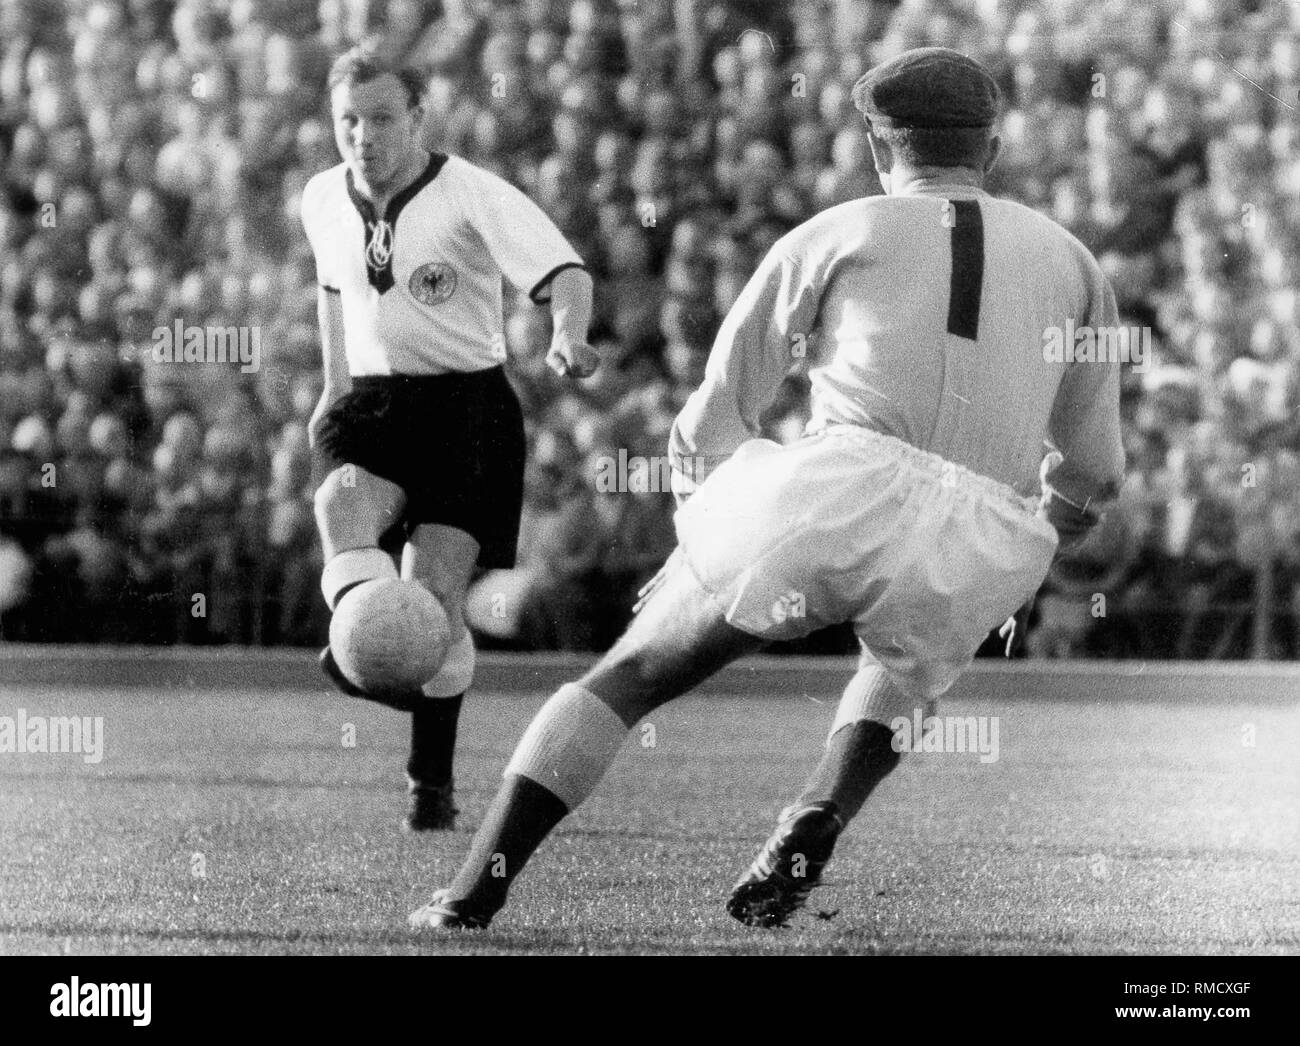 Germany against Northern Ireland (2: 2) at the 1958 FIFA World Cup in Sweden: Uwe Seeler stands alone ahead of the Northern Irish goalkeeper Gregg, but can not overcome him. - Stock Image